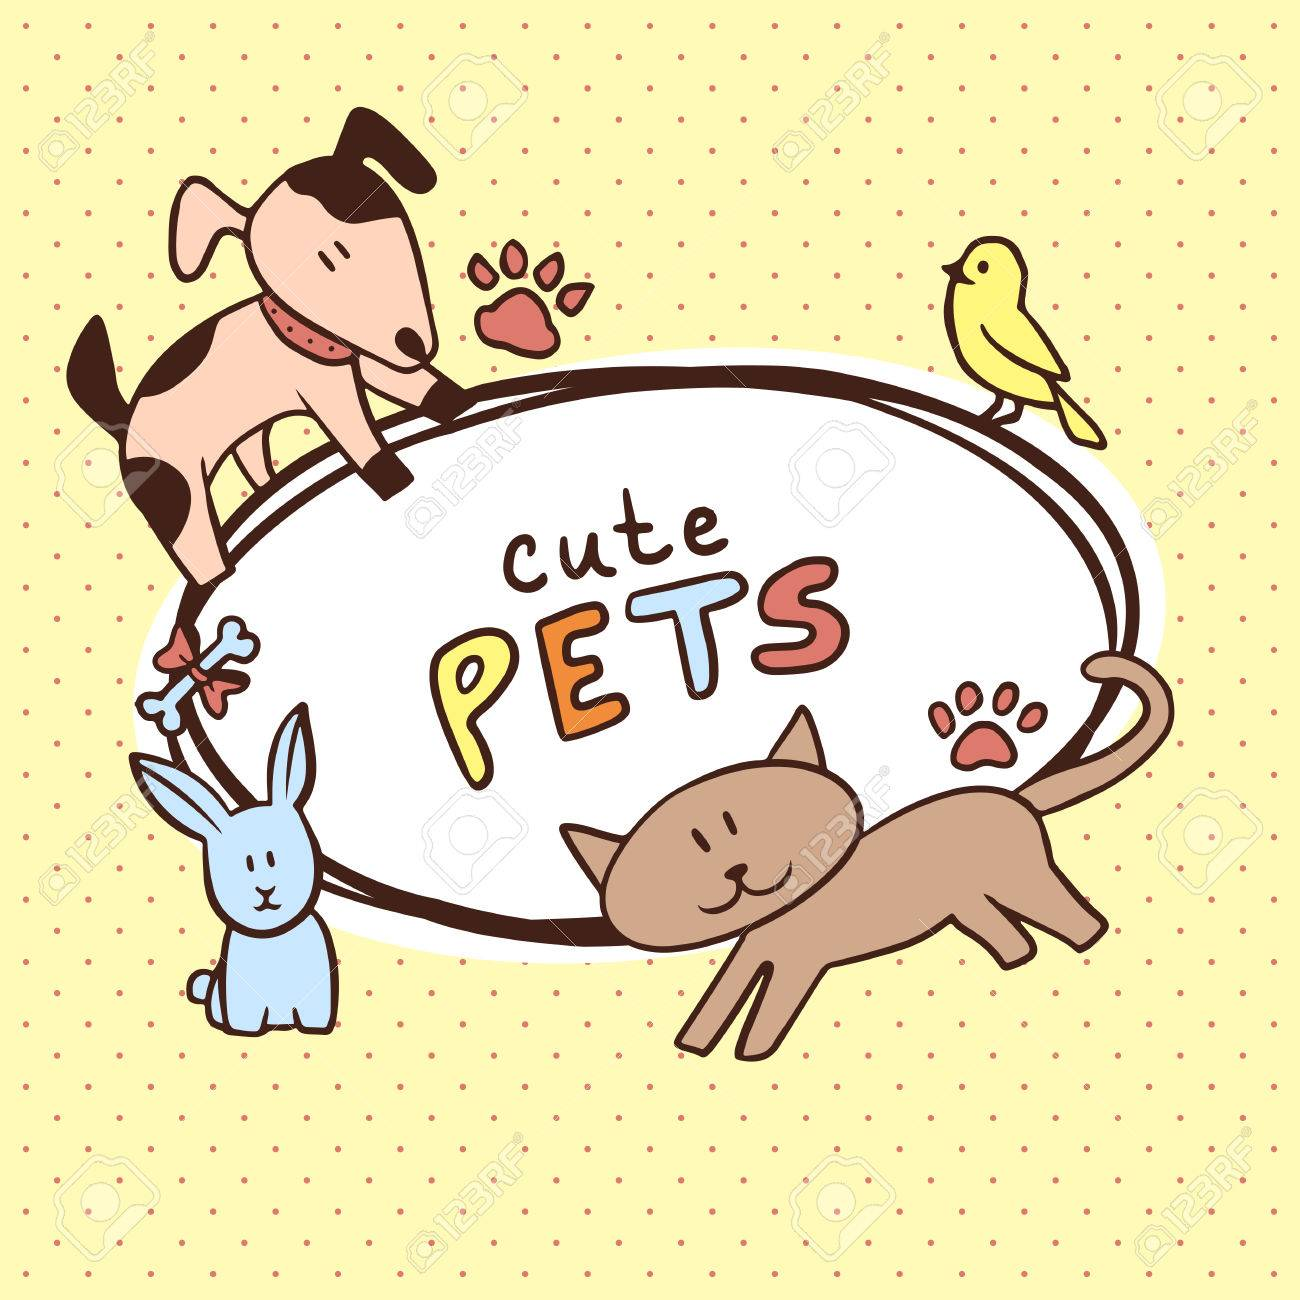 Banner With Cute Pets Dog Cat Rabbit Bird Royalty Free Cliparts Vectors And Stock Illustration Image 33396209